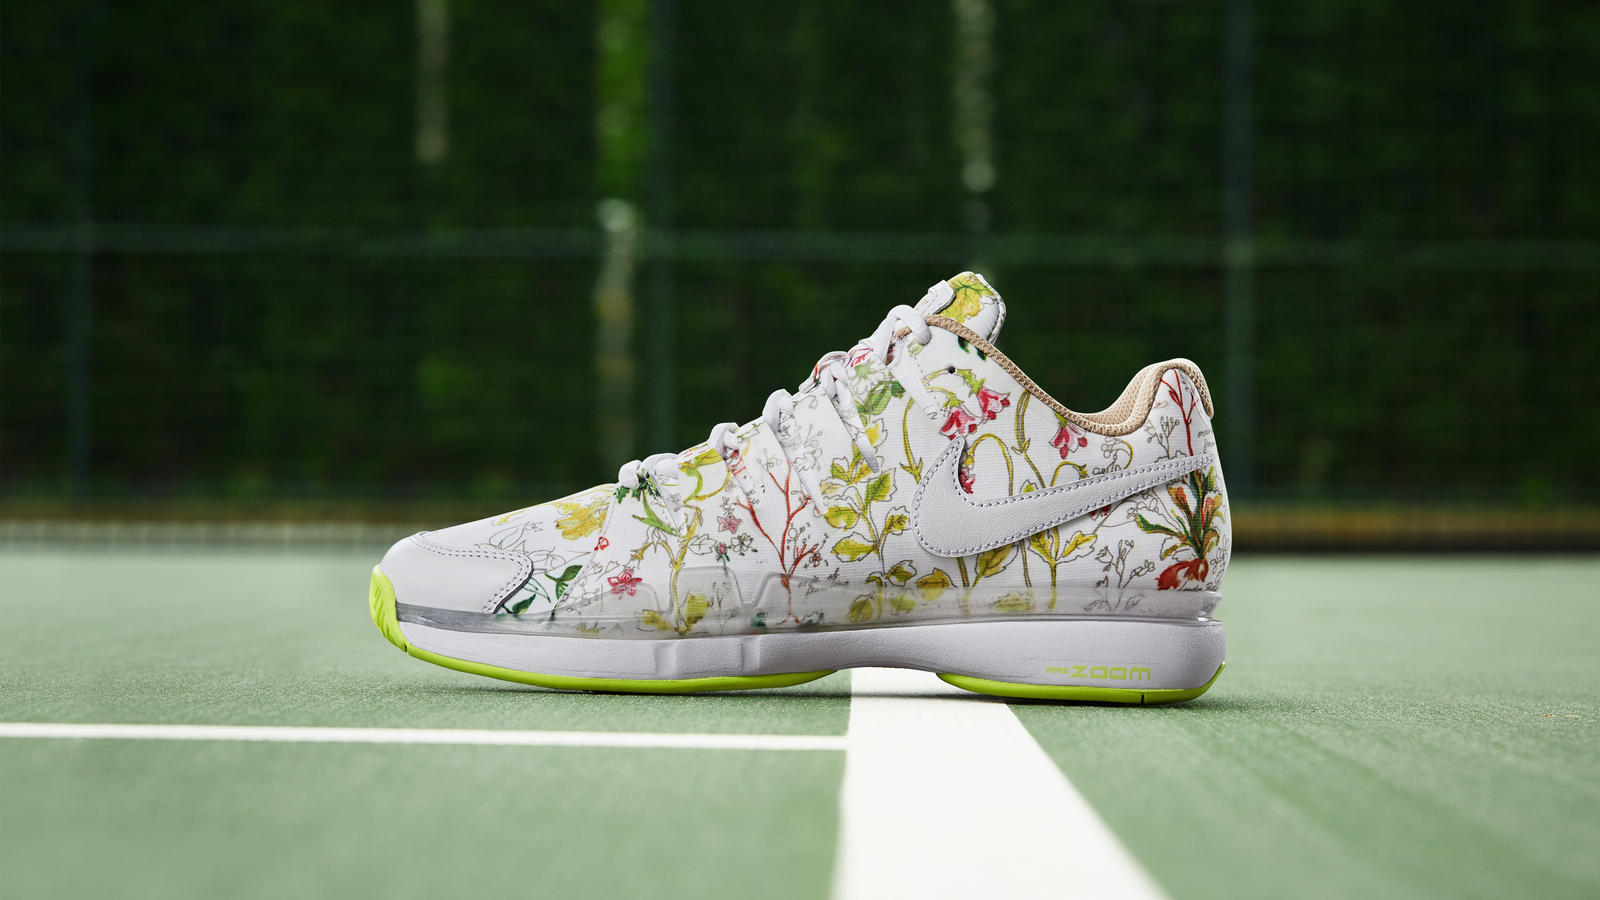 NikeCourt x Liberty Air Zoom Vapor 9.5